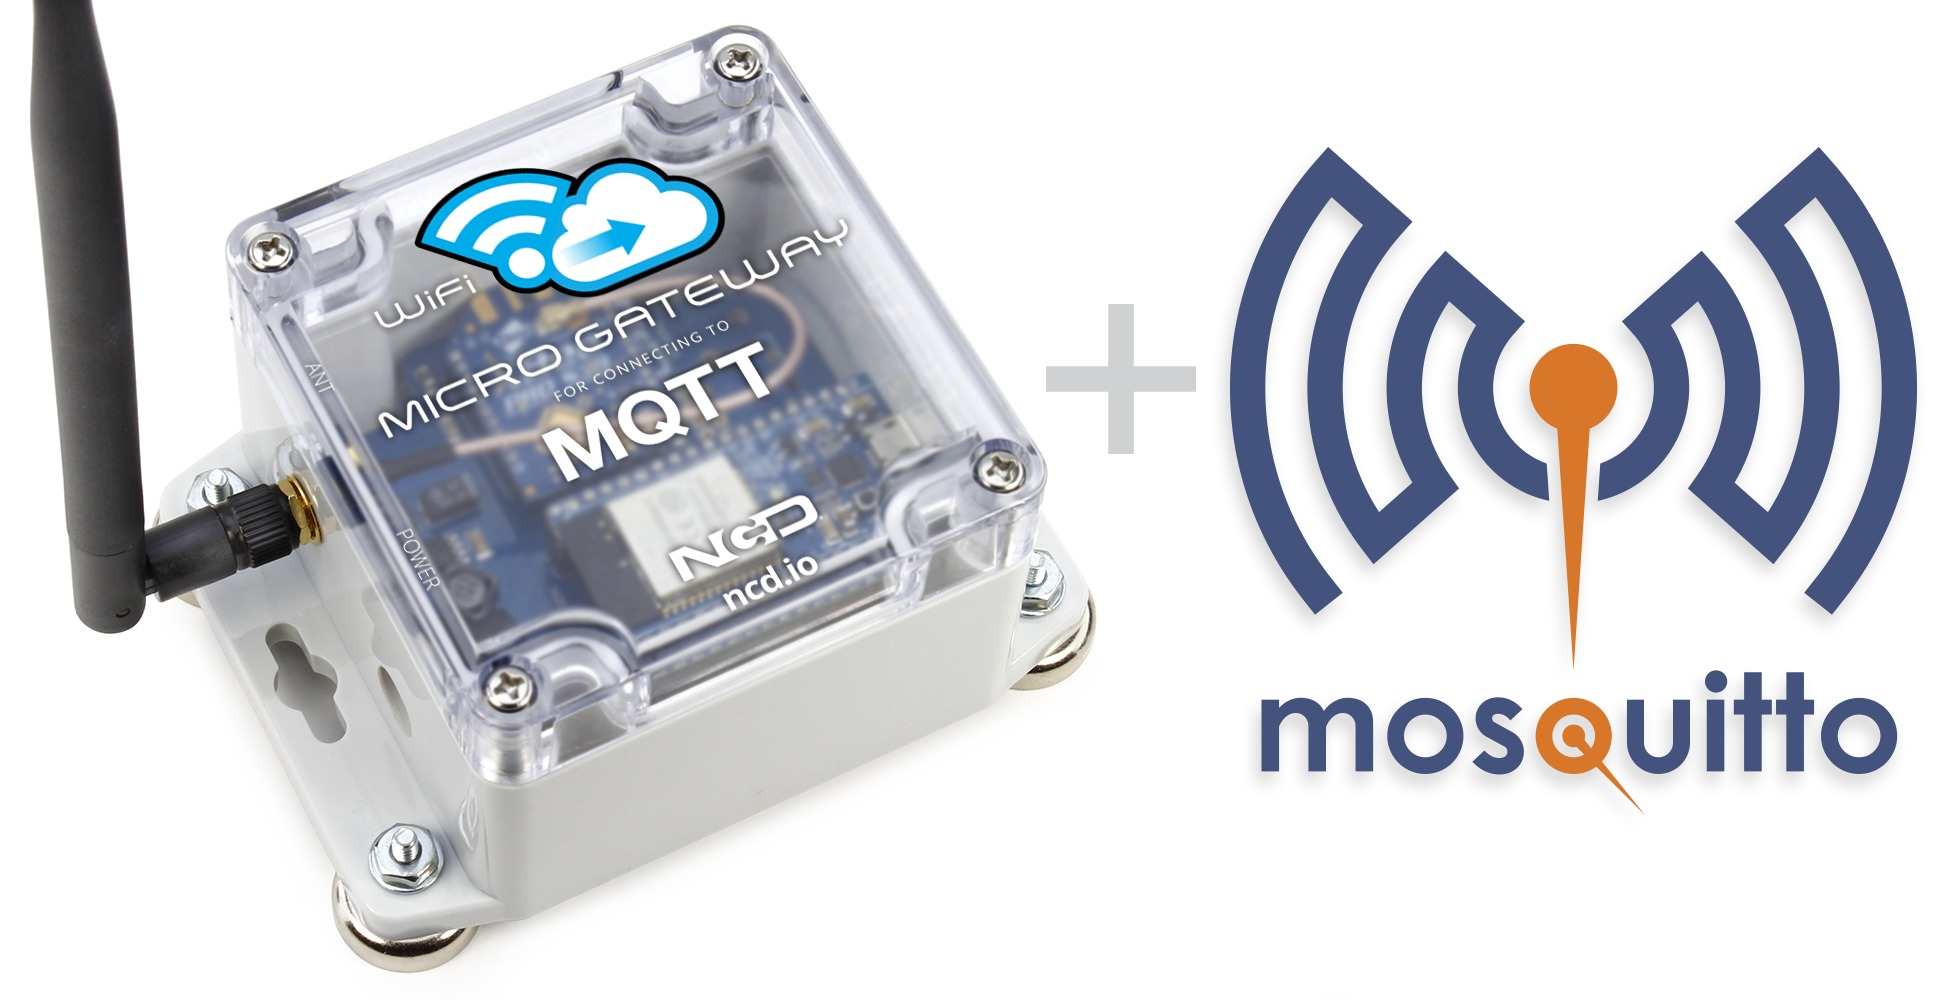 Connecting the MQTT Gateway to Mosquitto